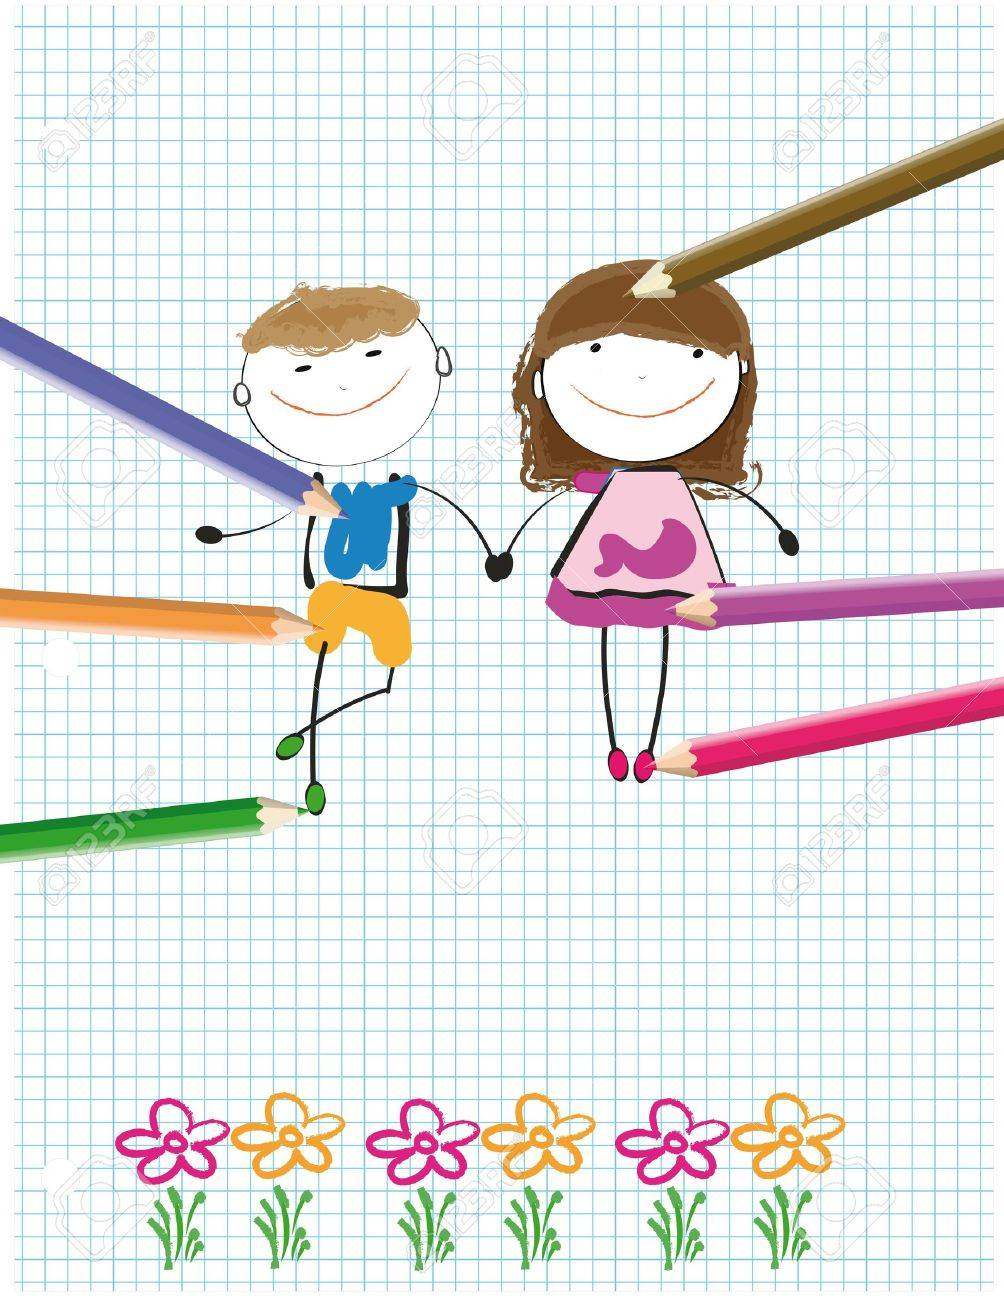 Colorful Kids Drawing On Sheet Of Paper Royalty Free Cliparts ...